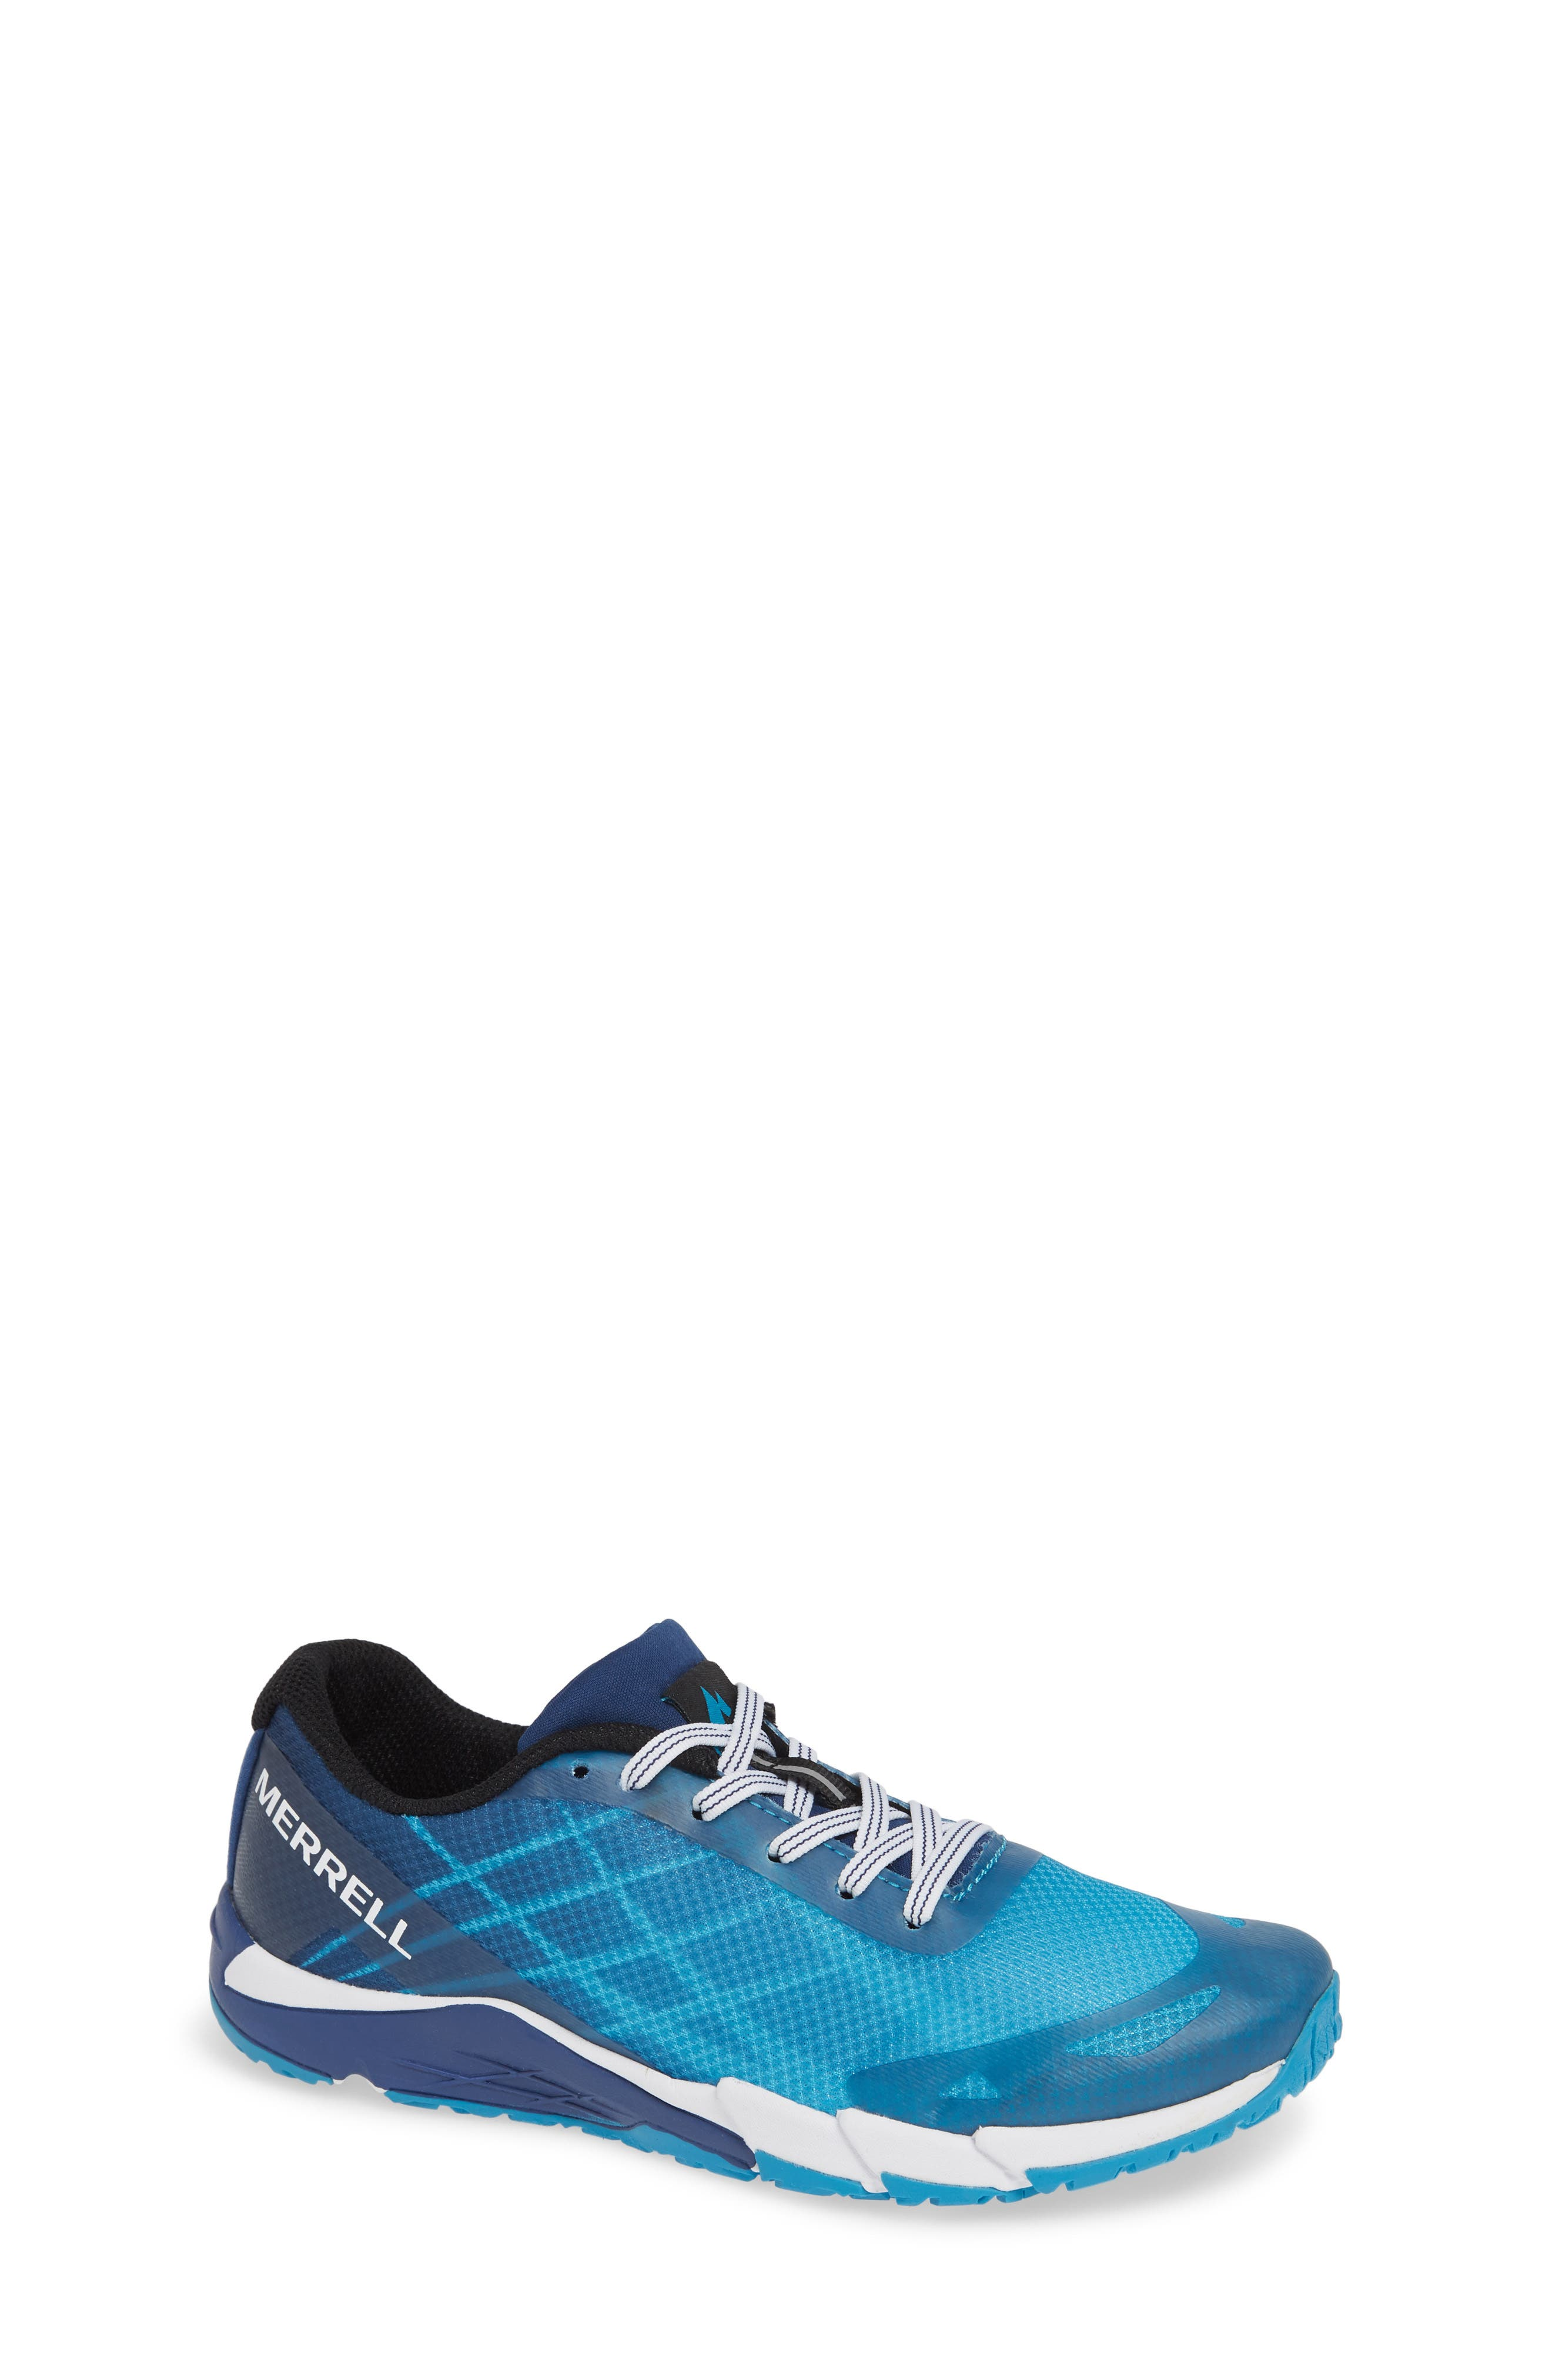 MERRELL Bare Access Sneaker, Main, color, BLUE SYNTHETIC